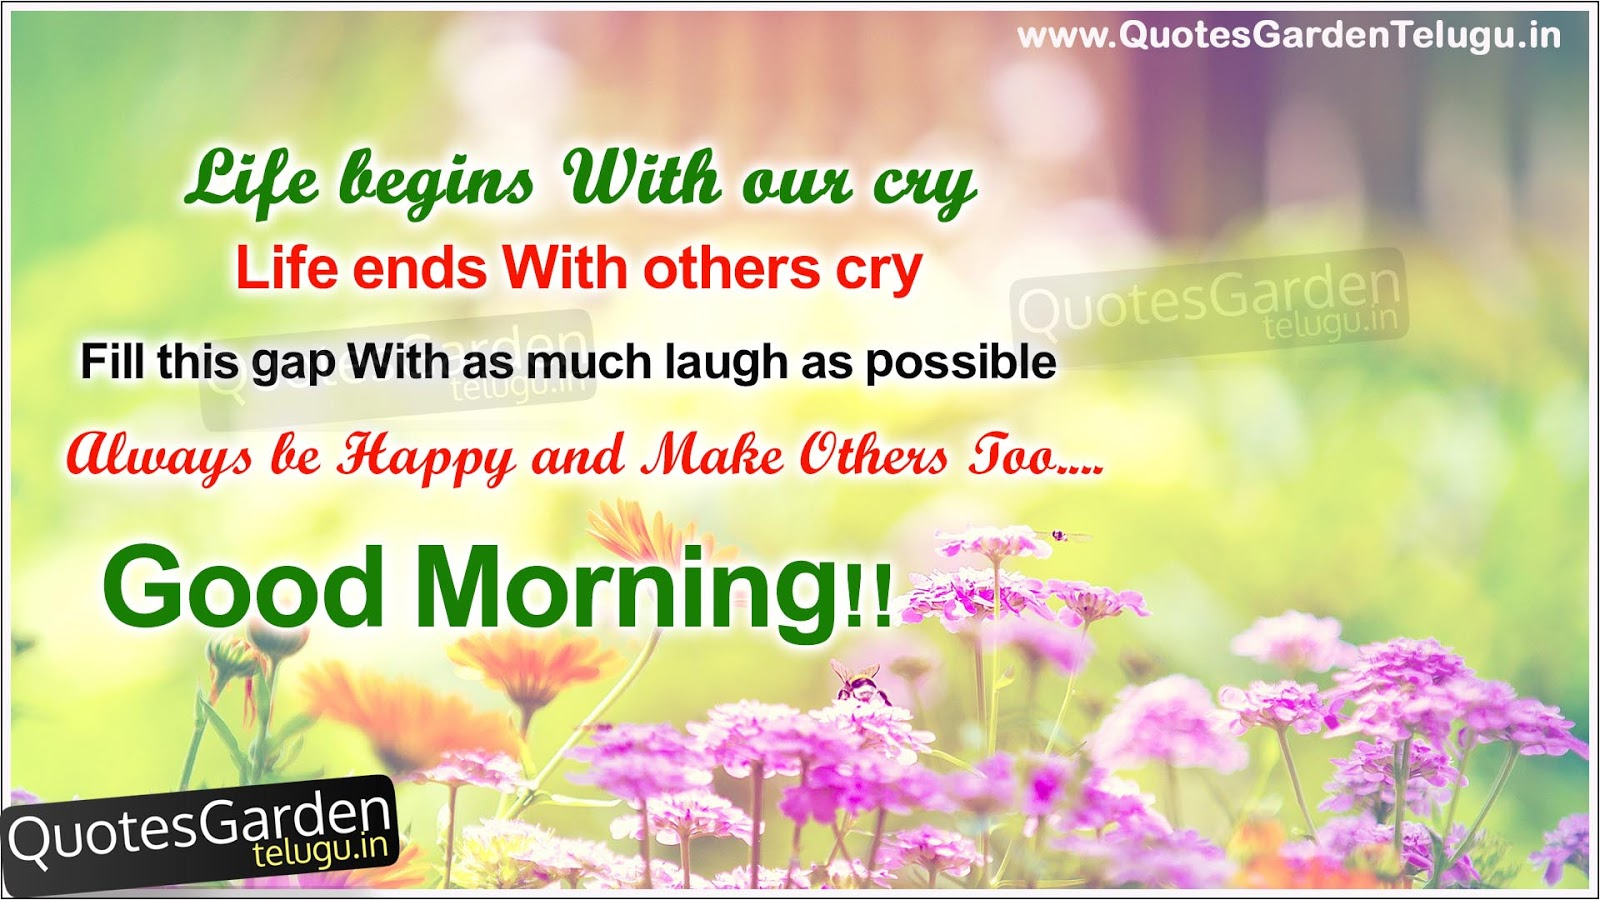 Nice Wallpapers With Quotes About Life In Hindi Good Morning Messages With Nice Hd Wallpapers Quotes